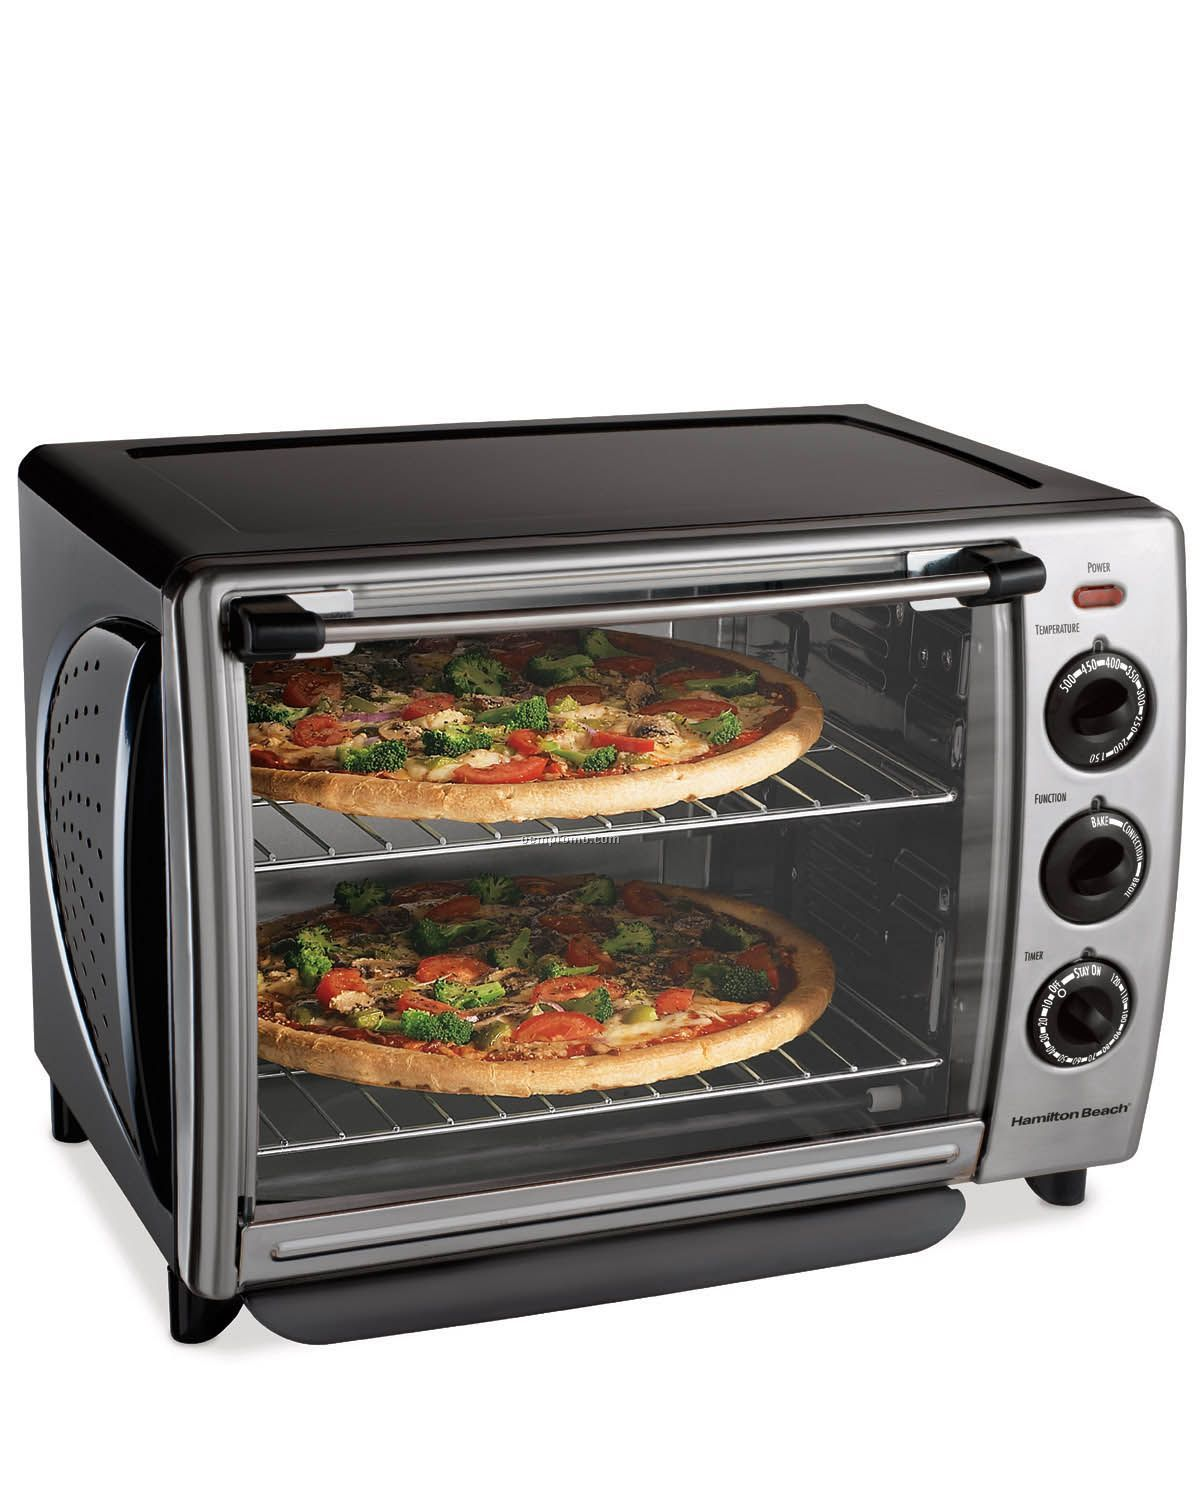 Hamilton Beach Countertop Oven With Convection And Rotisserie -,China Wholesale Hamilton Beach ...